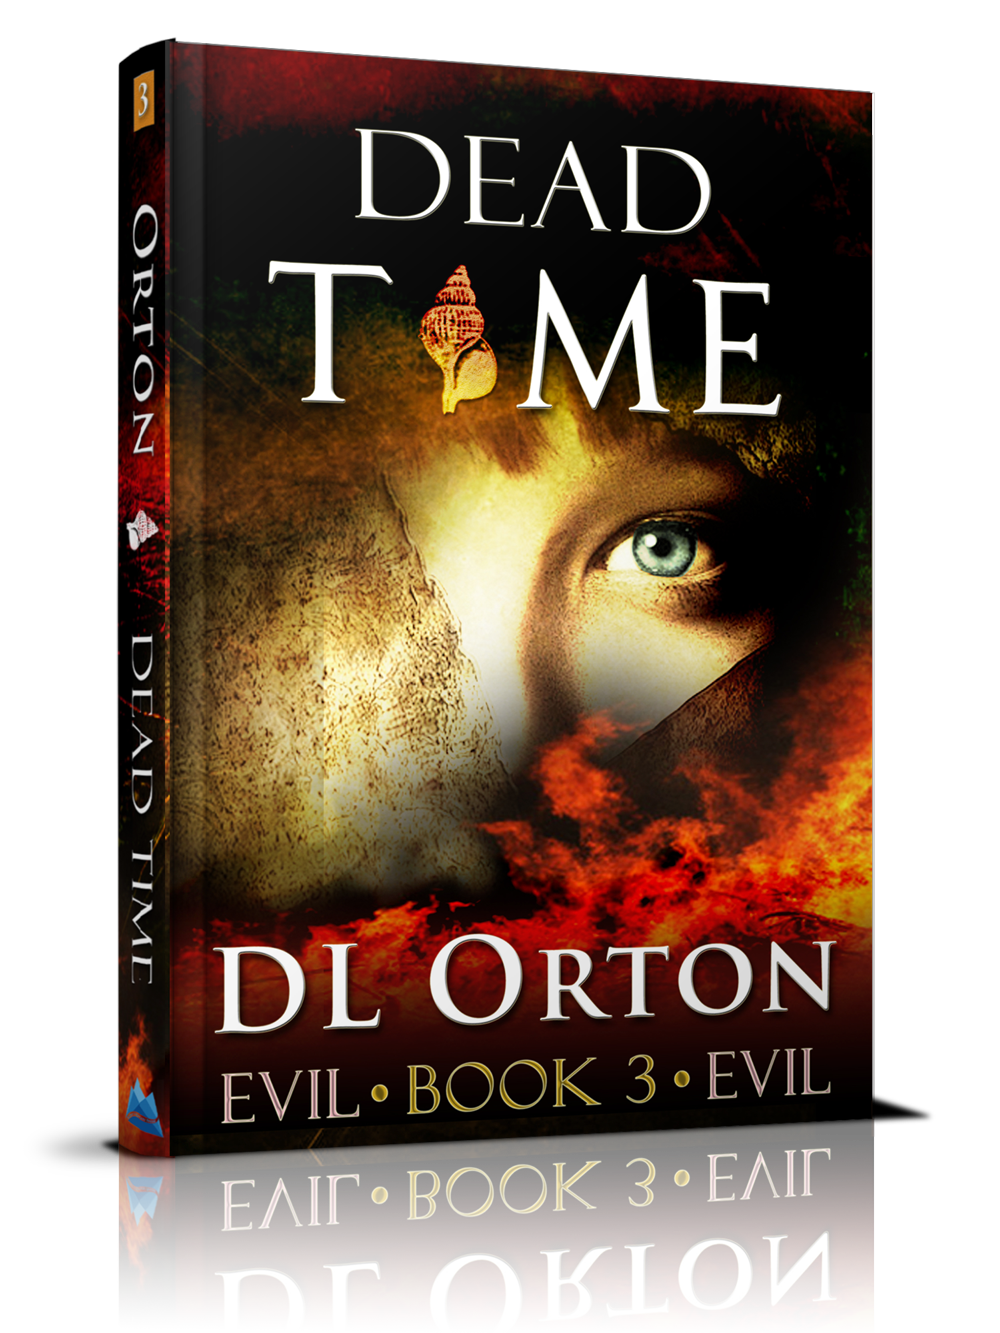 Dead Time by D. L. Orton Book Cover